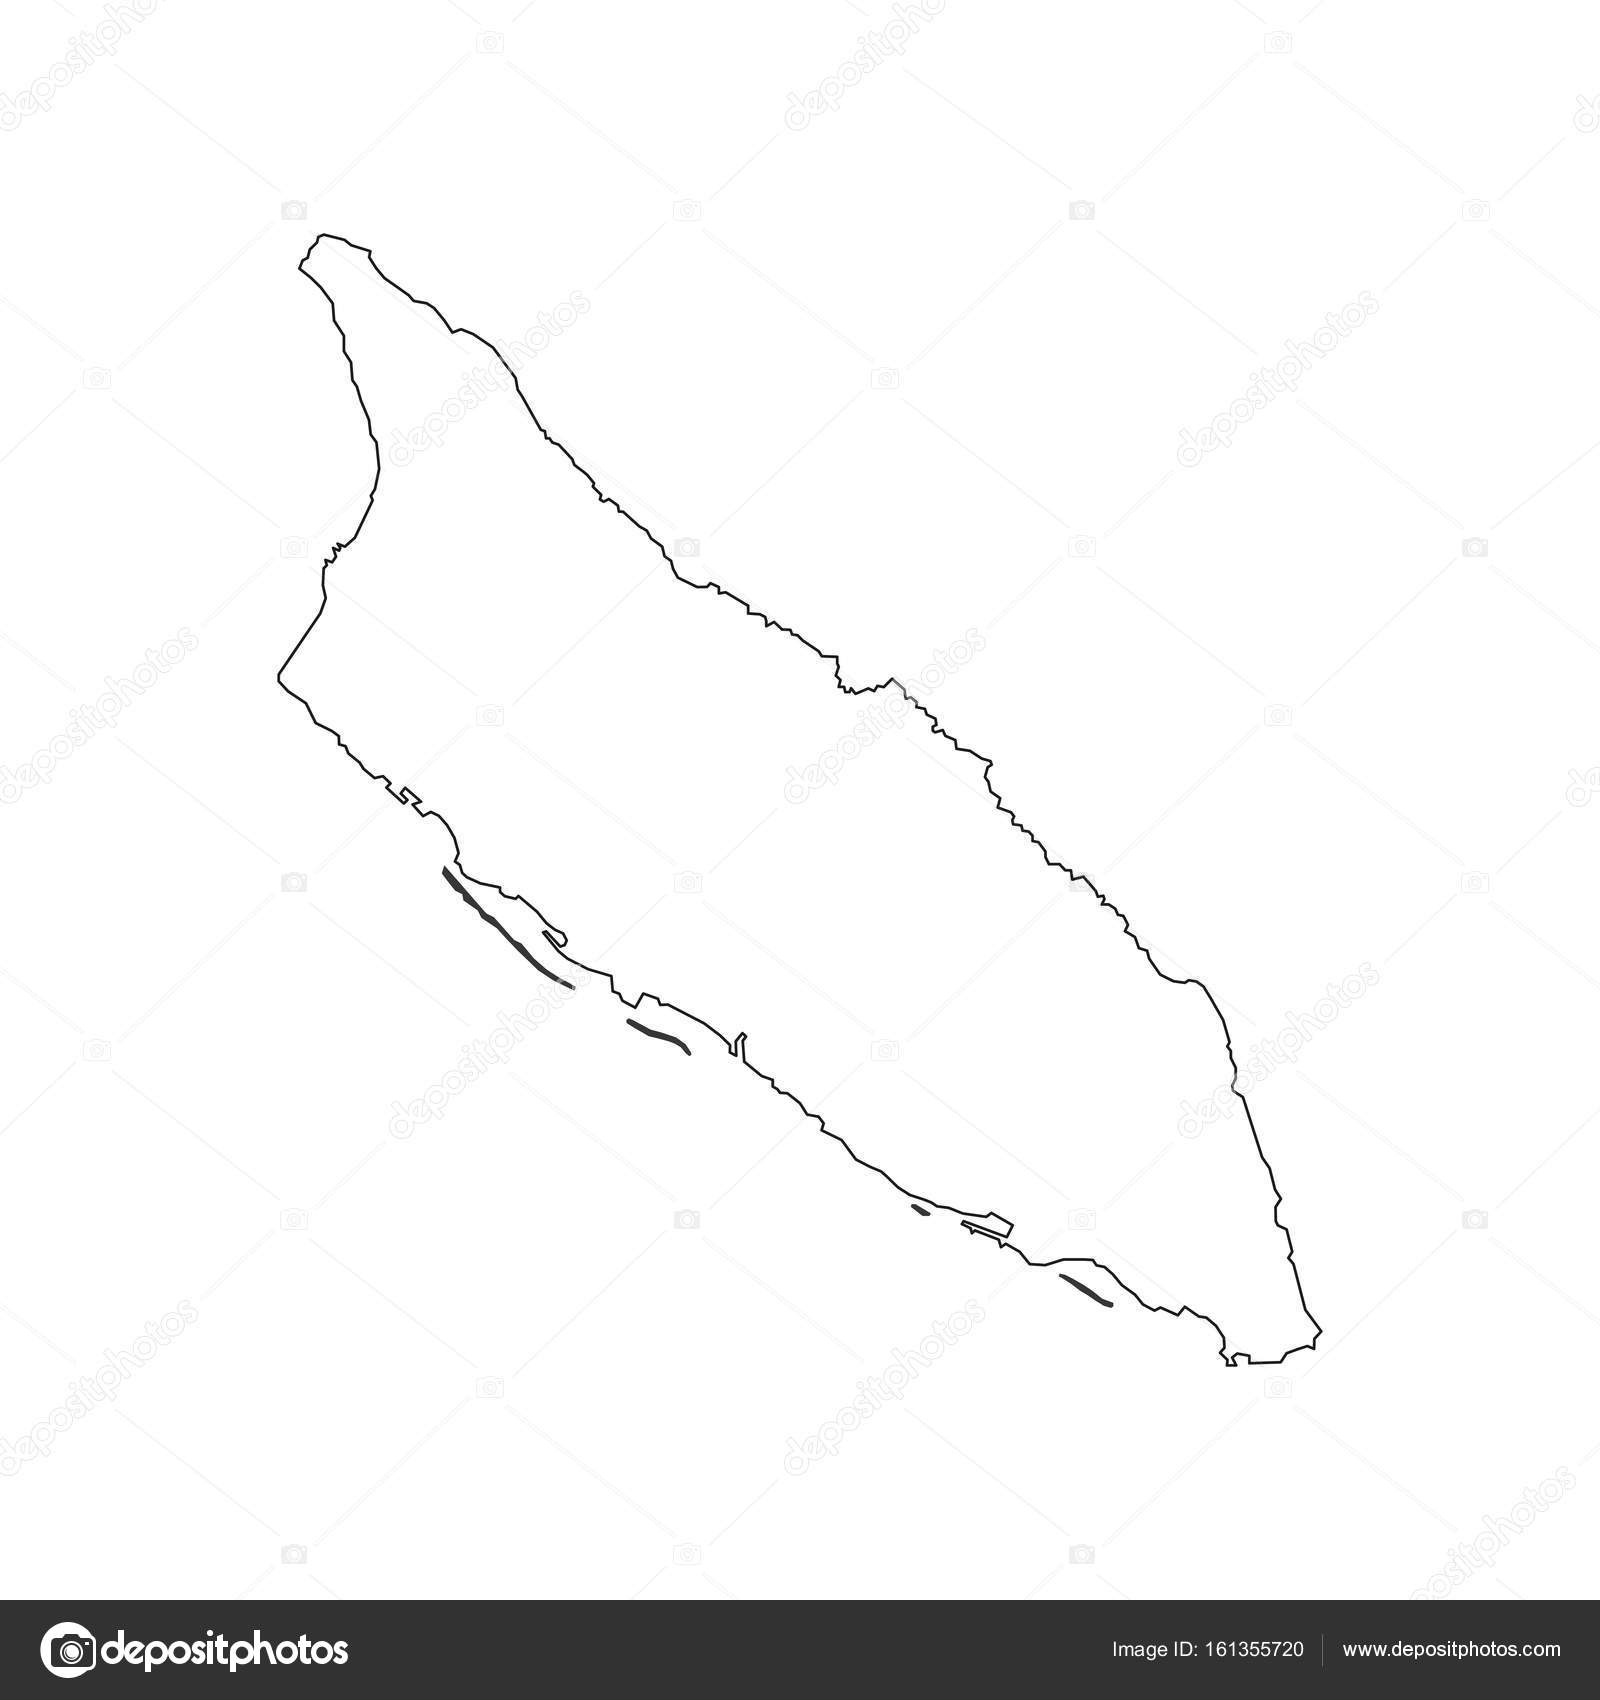 Aruba map outline     Stock Vector      parkheta gmail com  161355720 Aruba map outline on the white background  Vector illustration     Vector by  parkheta gmail com